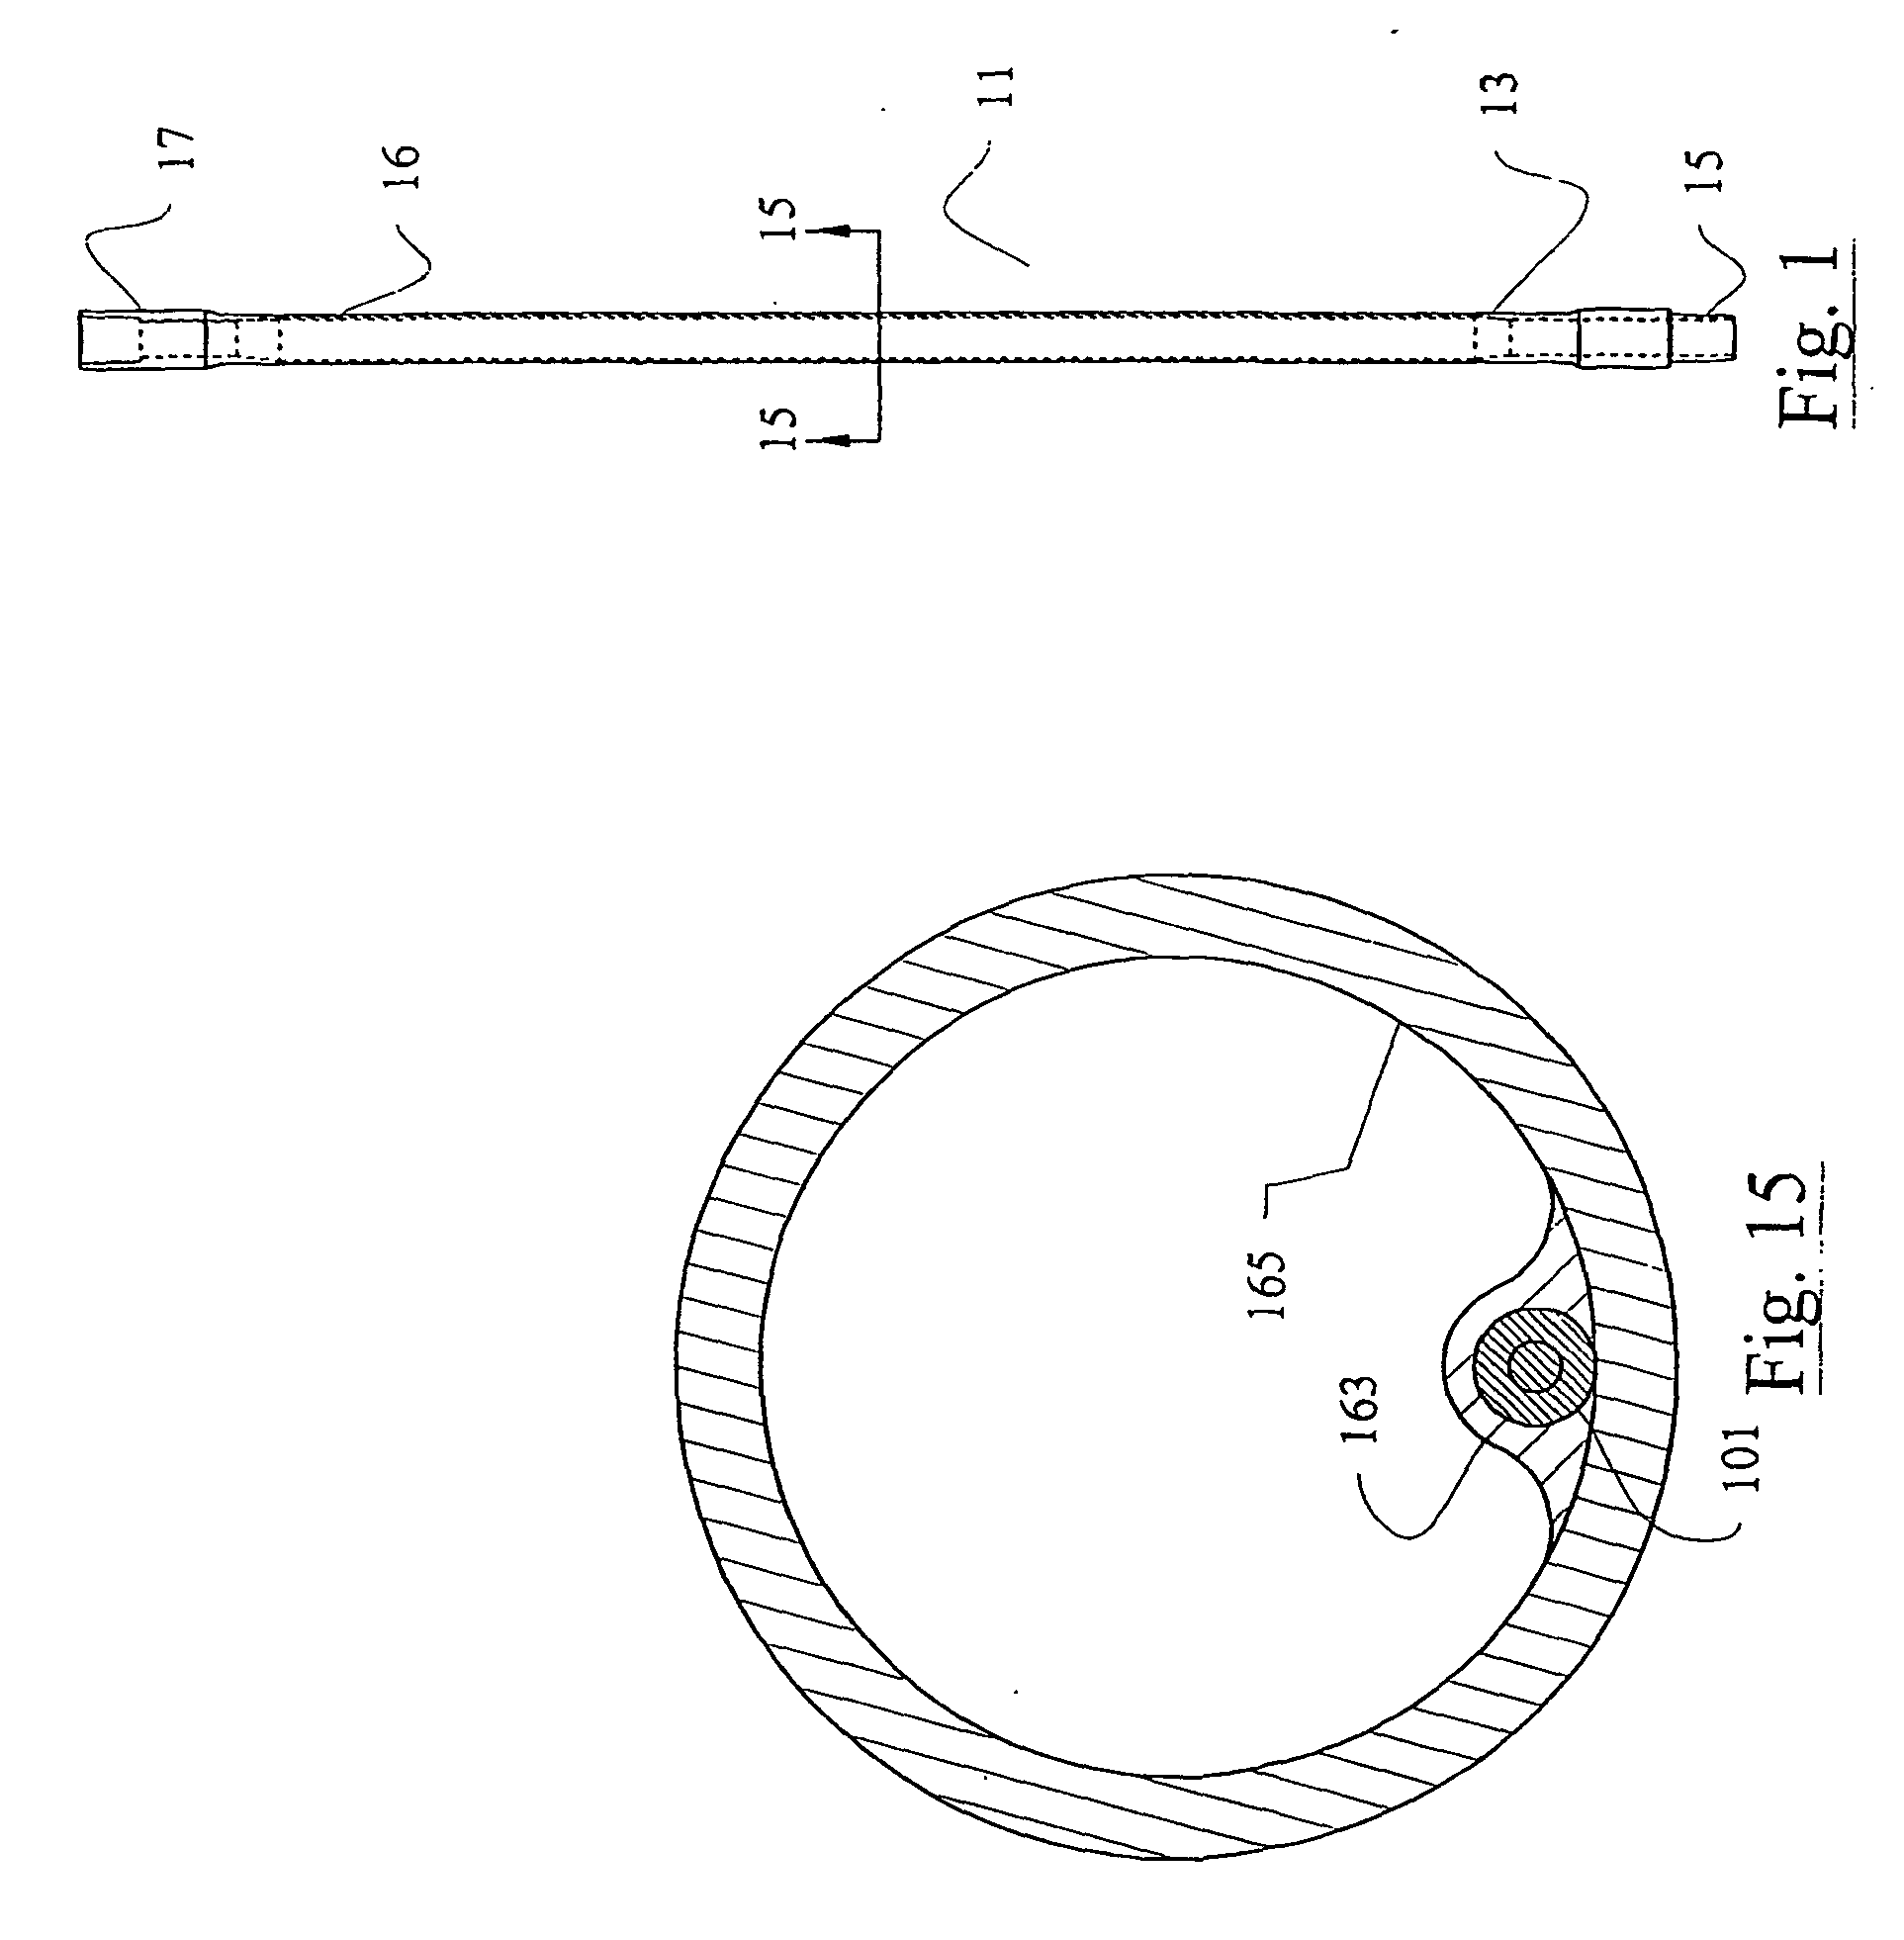 DATA TRANSMISSION SYSTEM FOR A STRING OF DOWNHOLE COMPONENTS